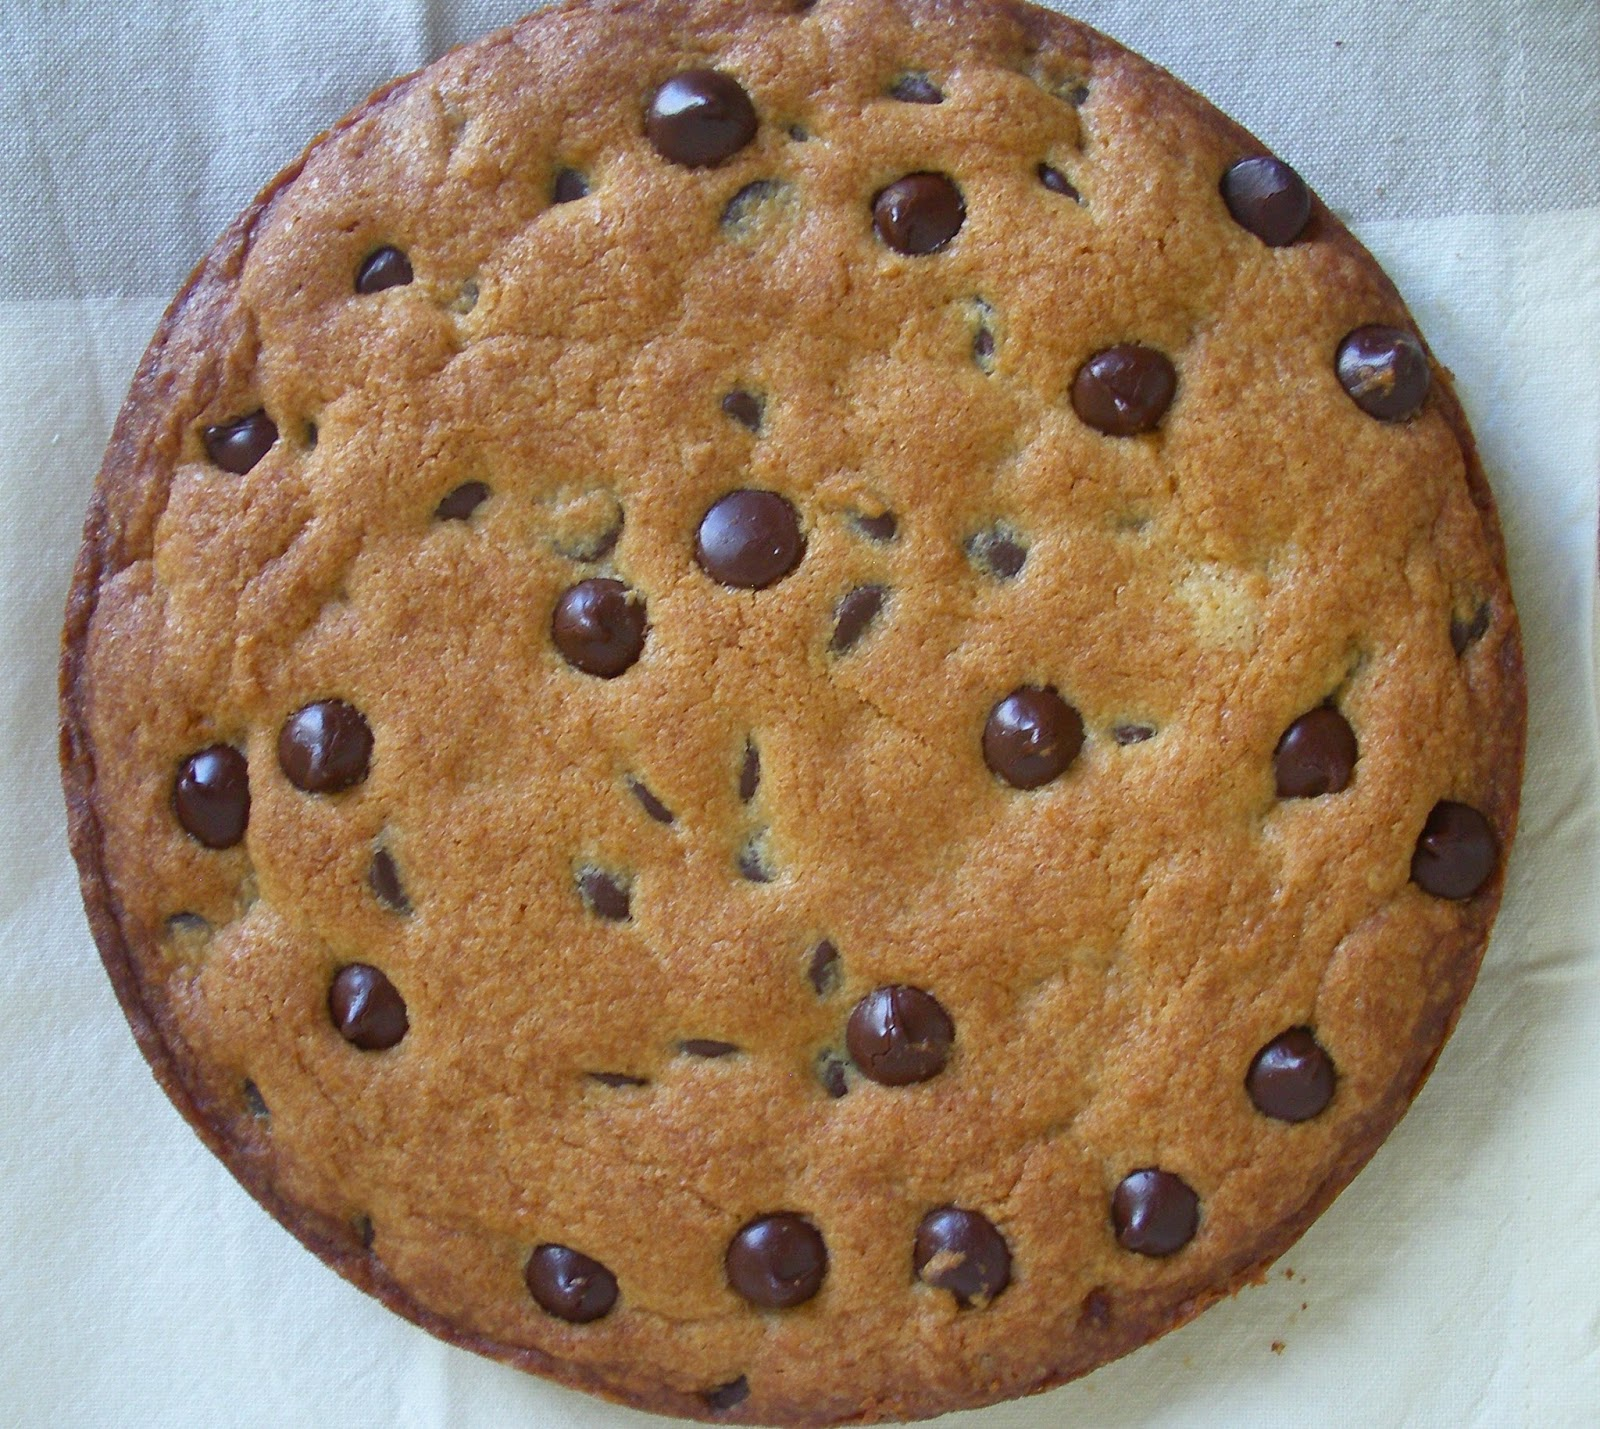 Chocolate chip cookie-cake